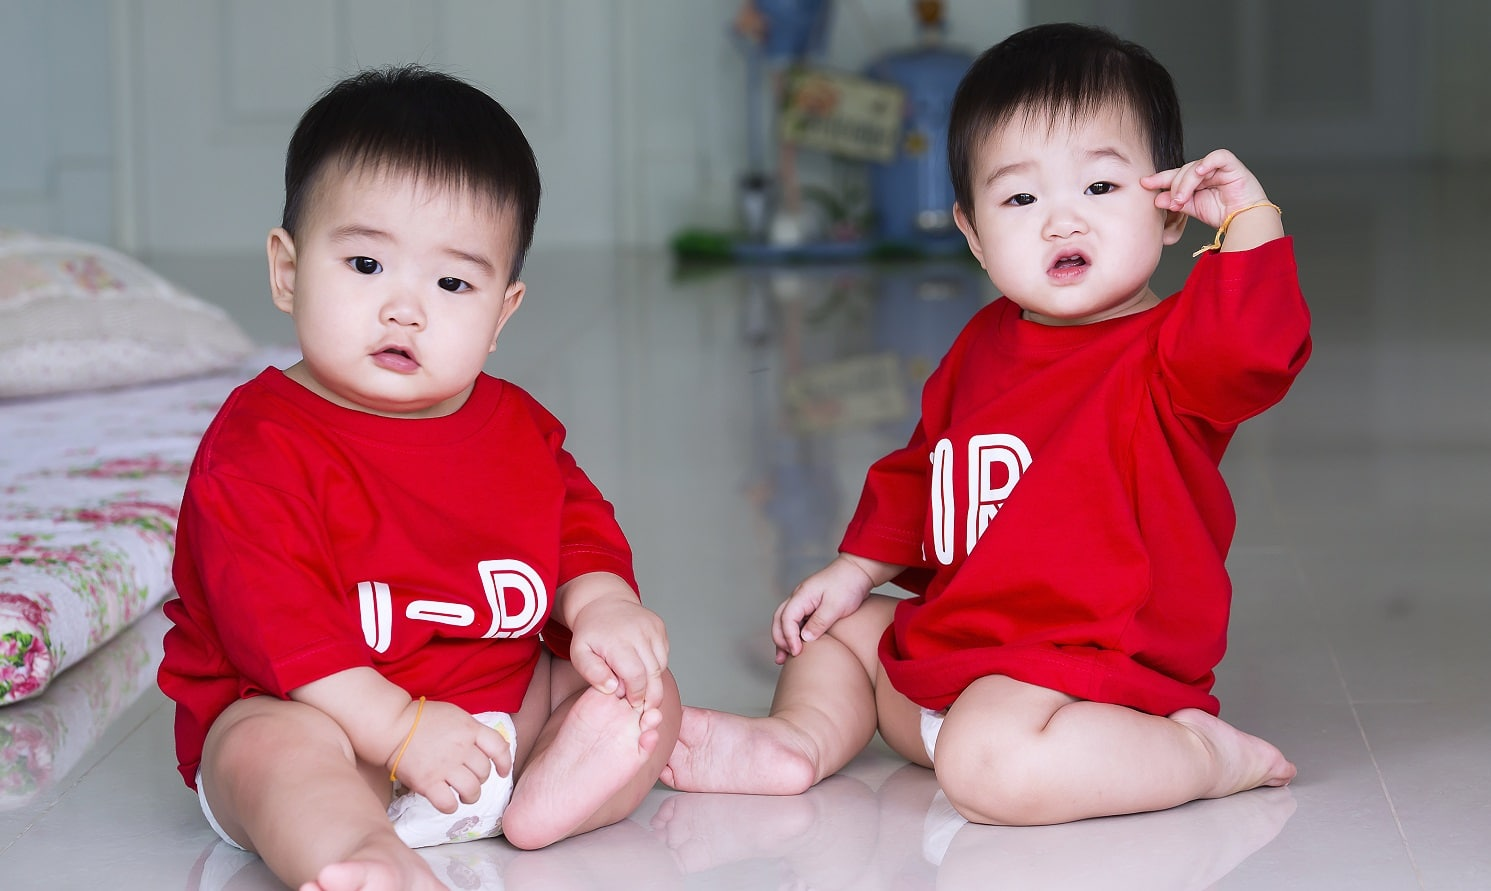 twin boys and girls names with similar meanings - Twin Boys and Girls Names with Similar Meanings